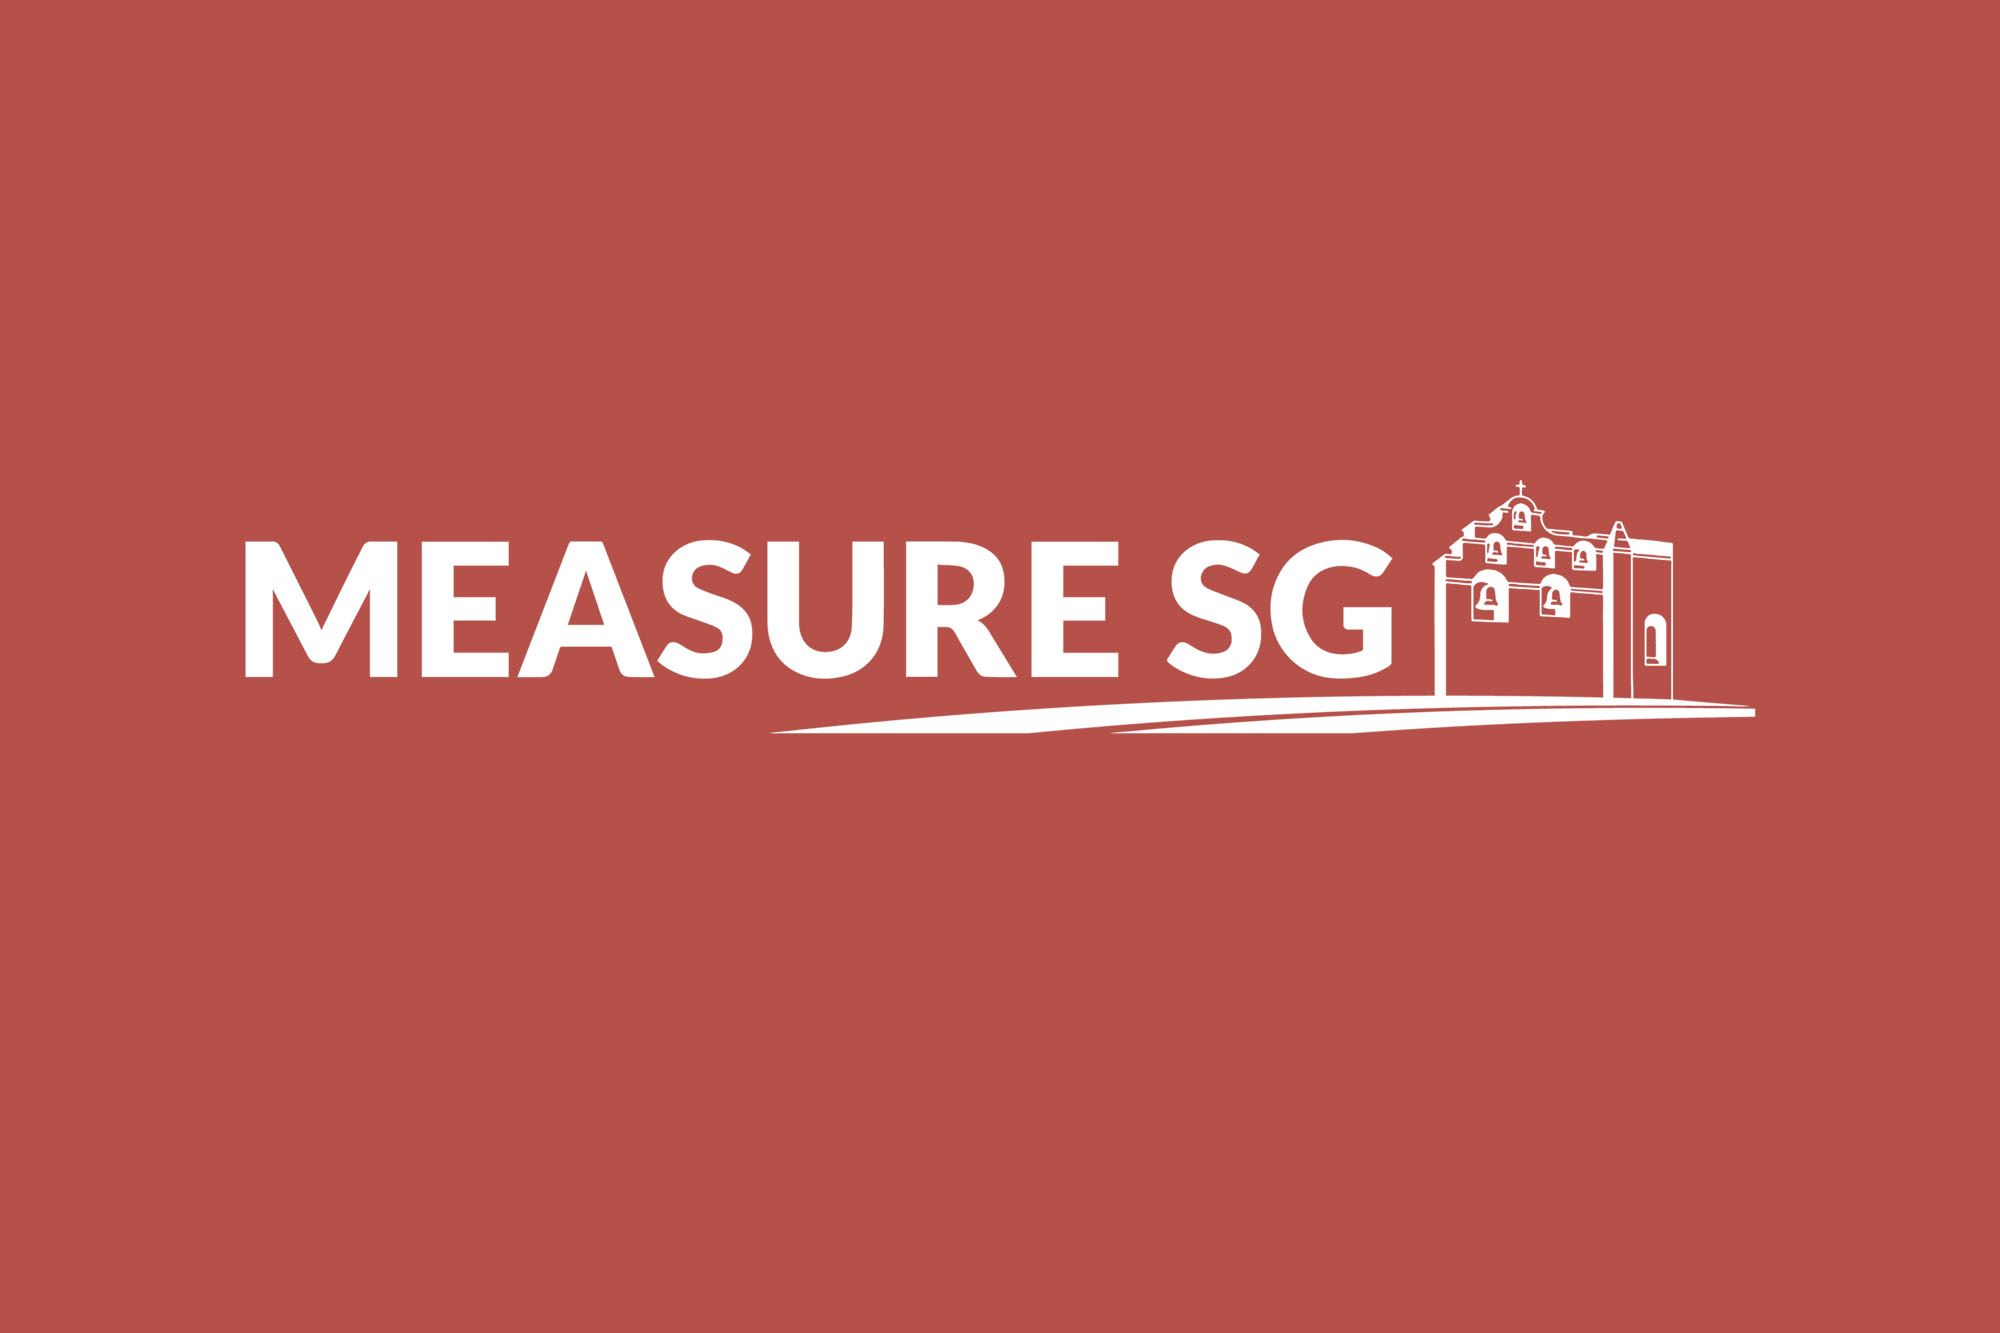 City Manager's monthly message: learn more about Measure SG